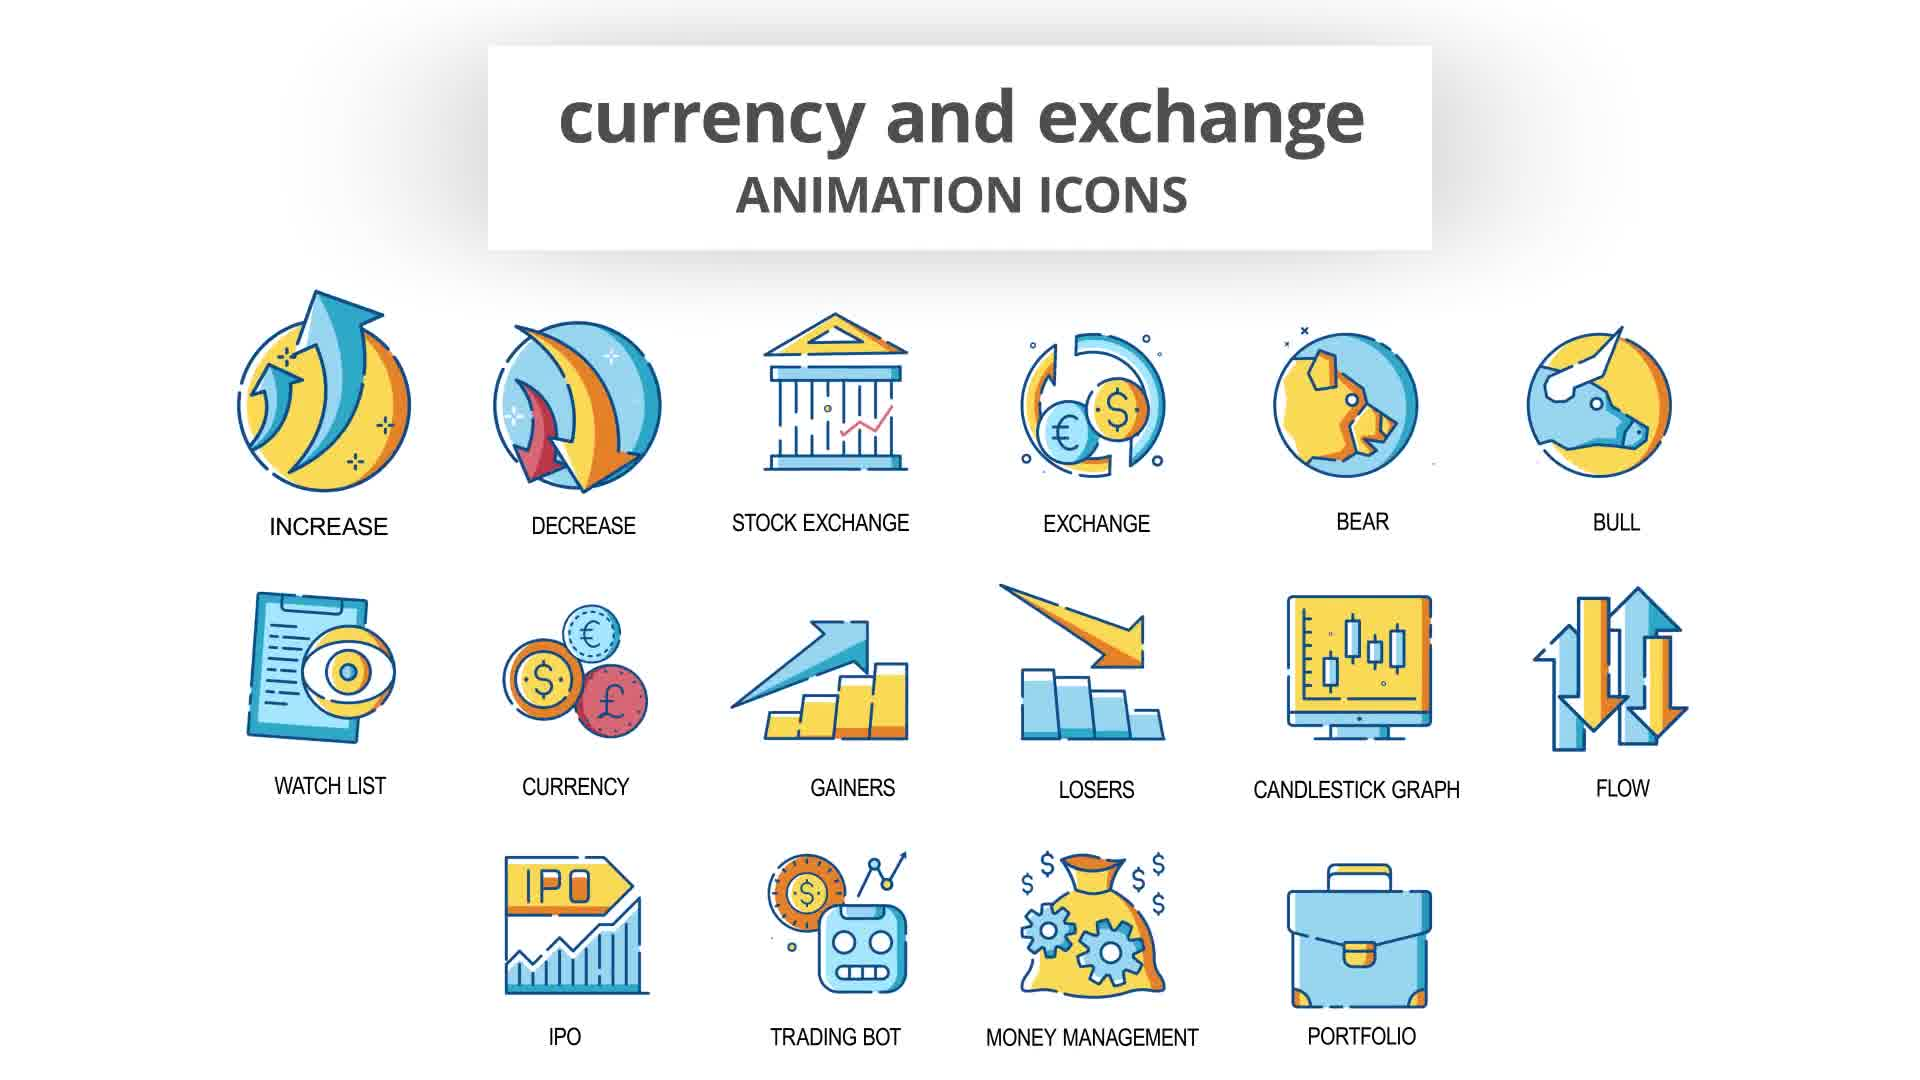 Currency & Exchange Animation Icons Videohive 30260825 After Effects Image 10